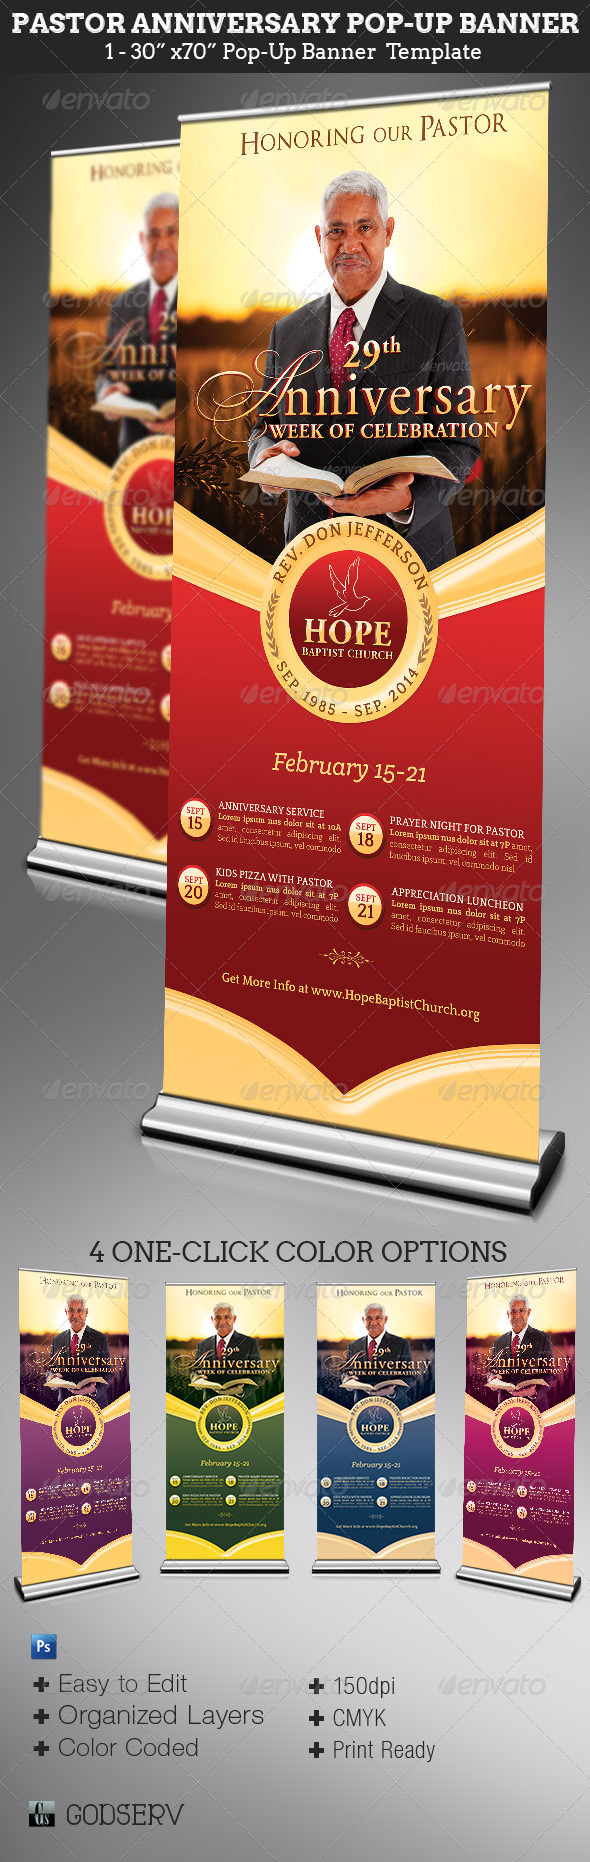 Pastor Anniversary Pop Up Banner Template Graphicmule